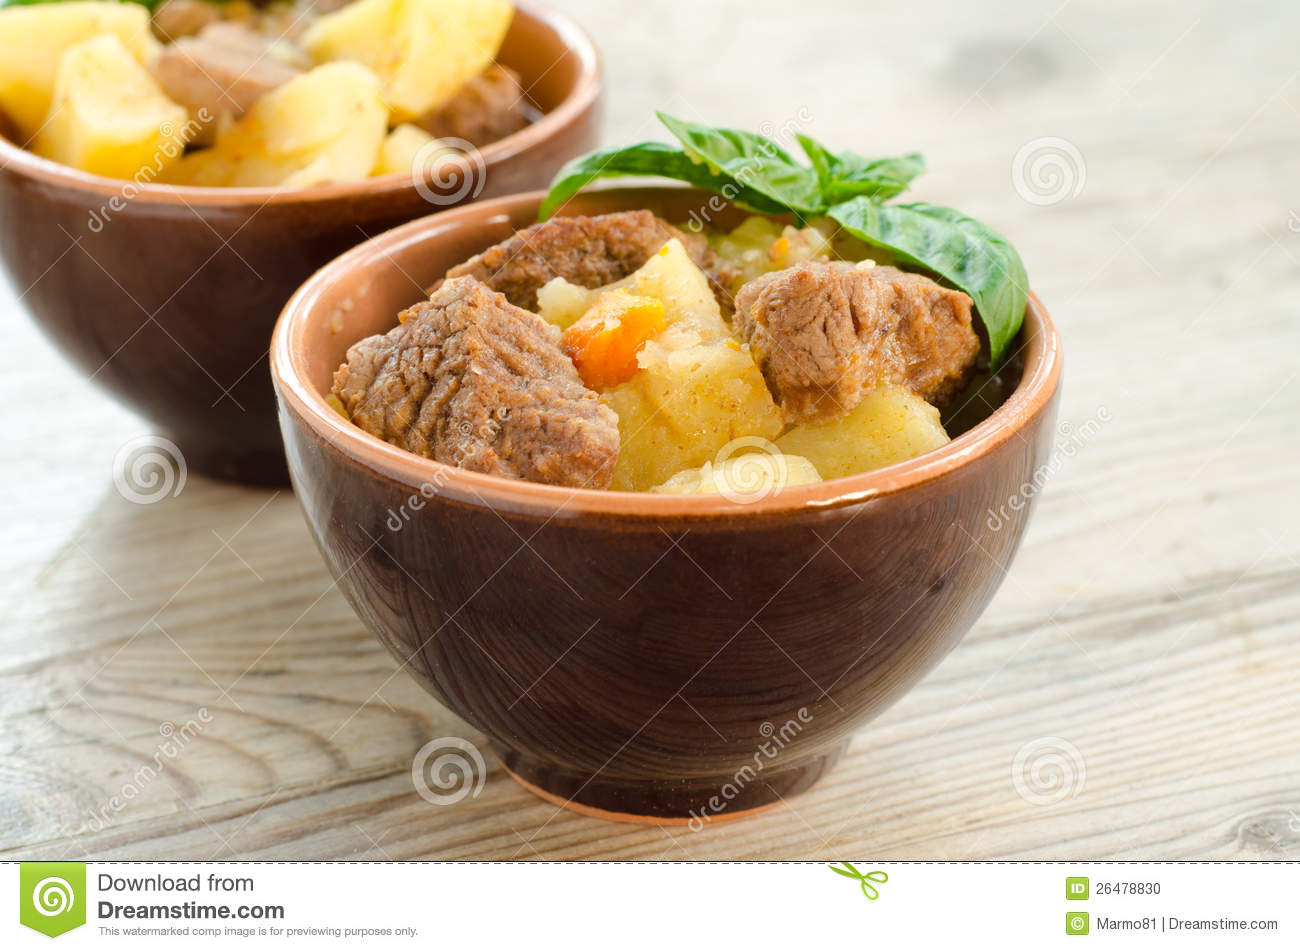 More similar stock images of ` Beef stew and boiled vegetables `